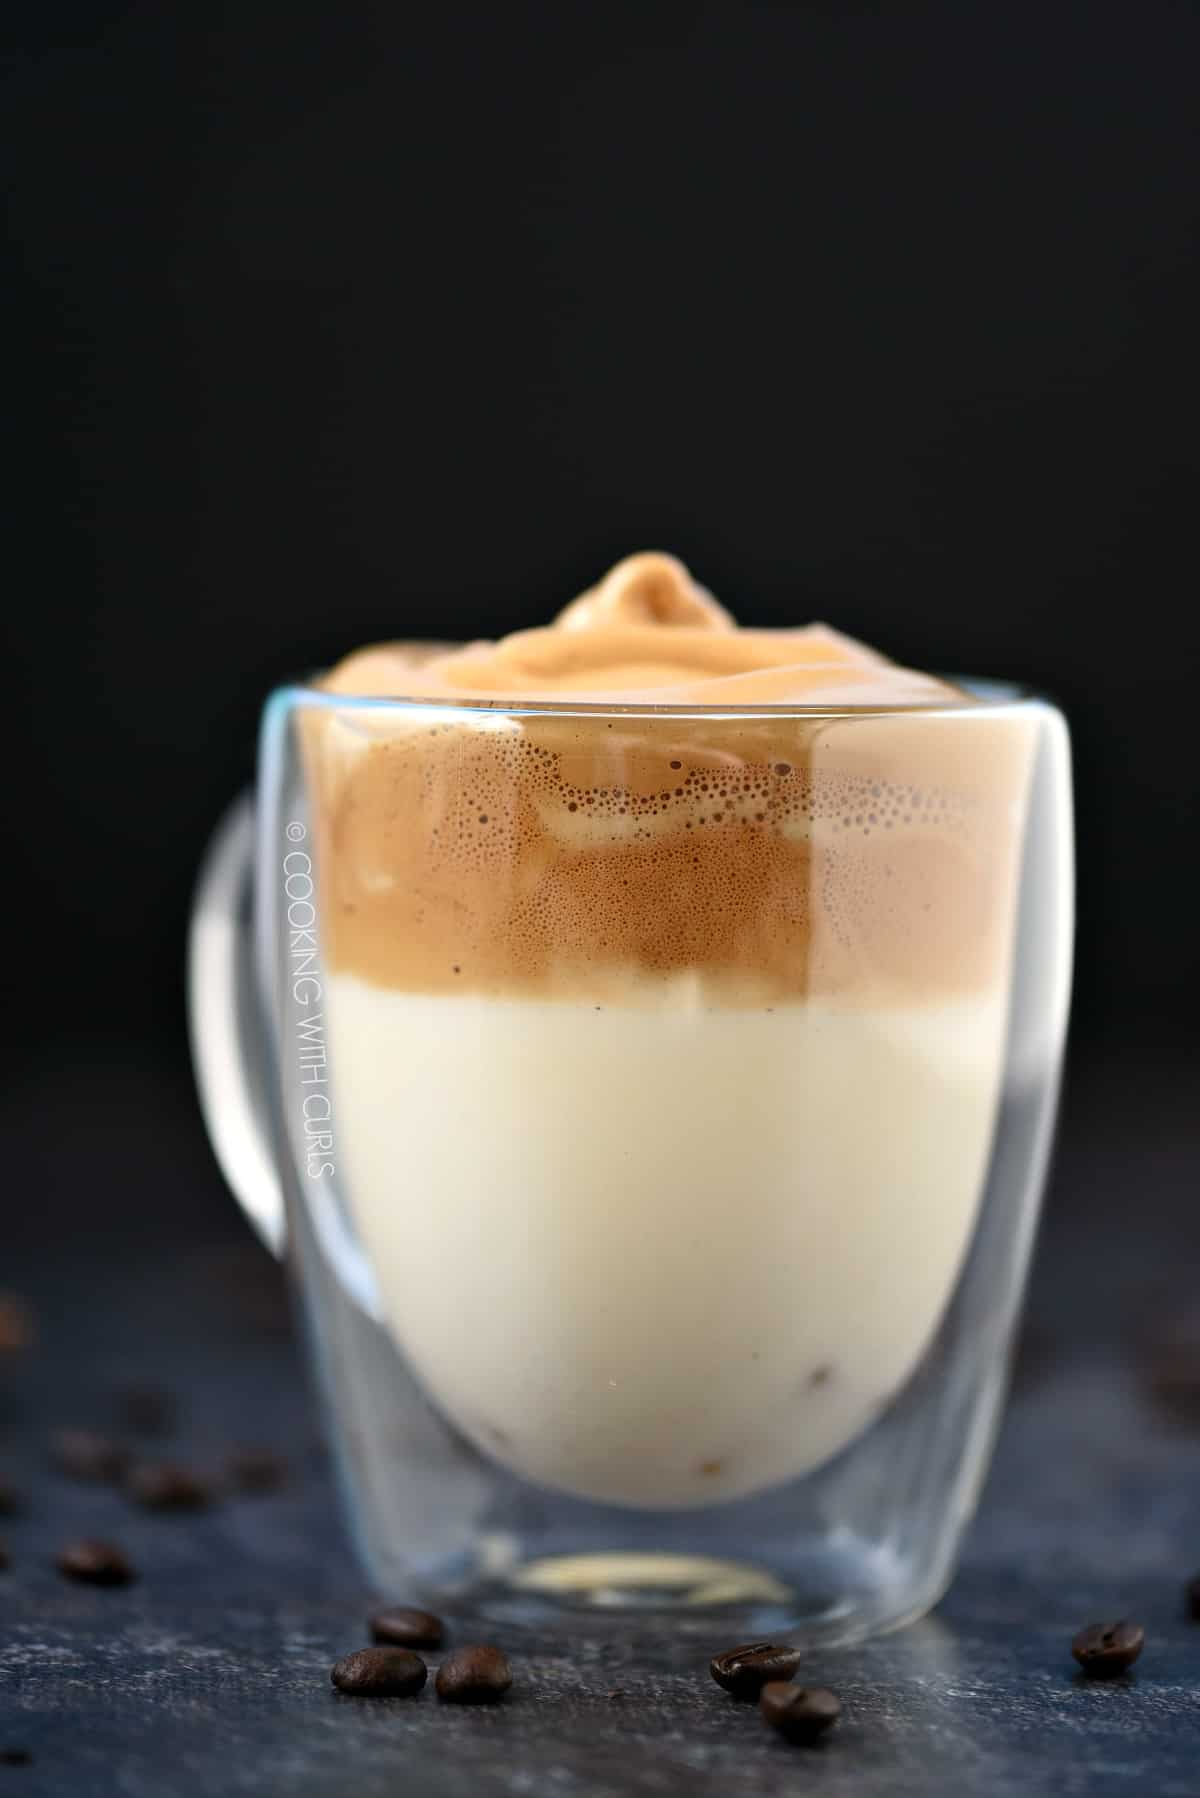 Side view of whipped dalgona coffee floating on top of milk in a clear glass mug.